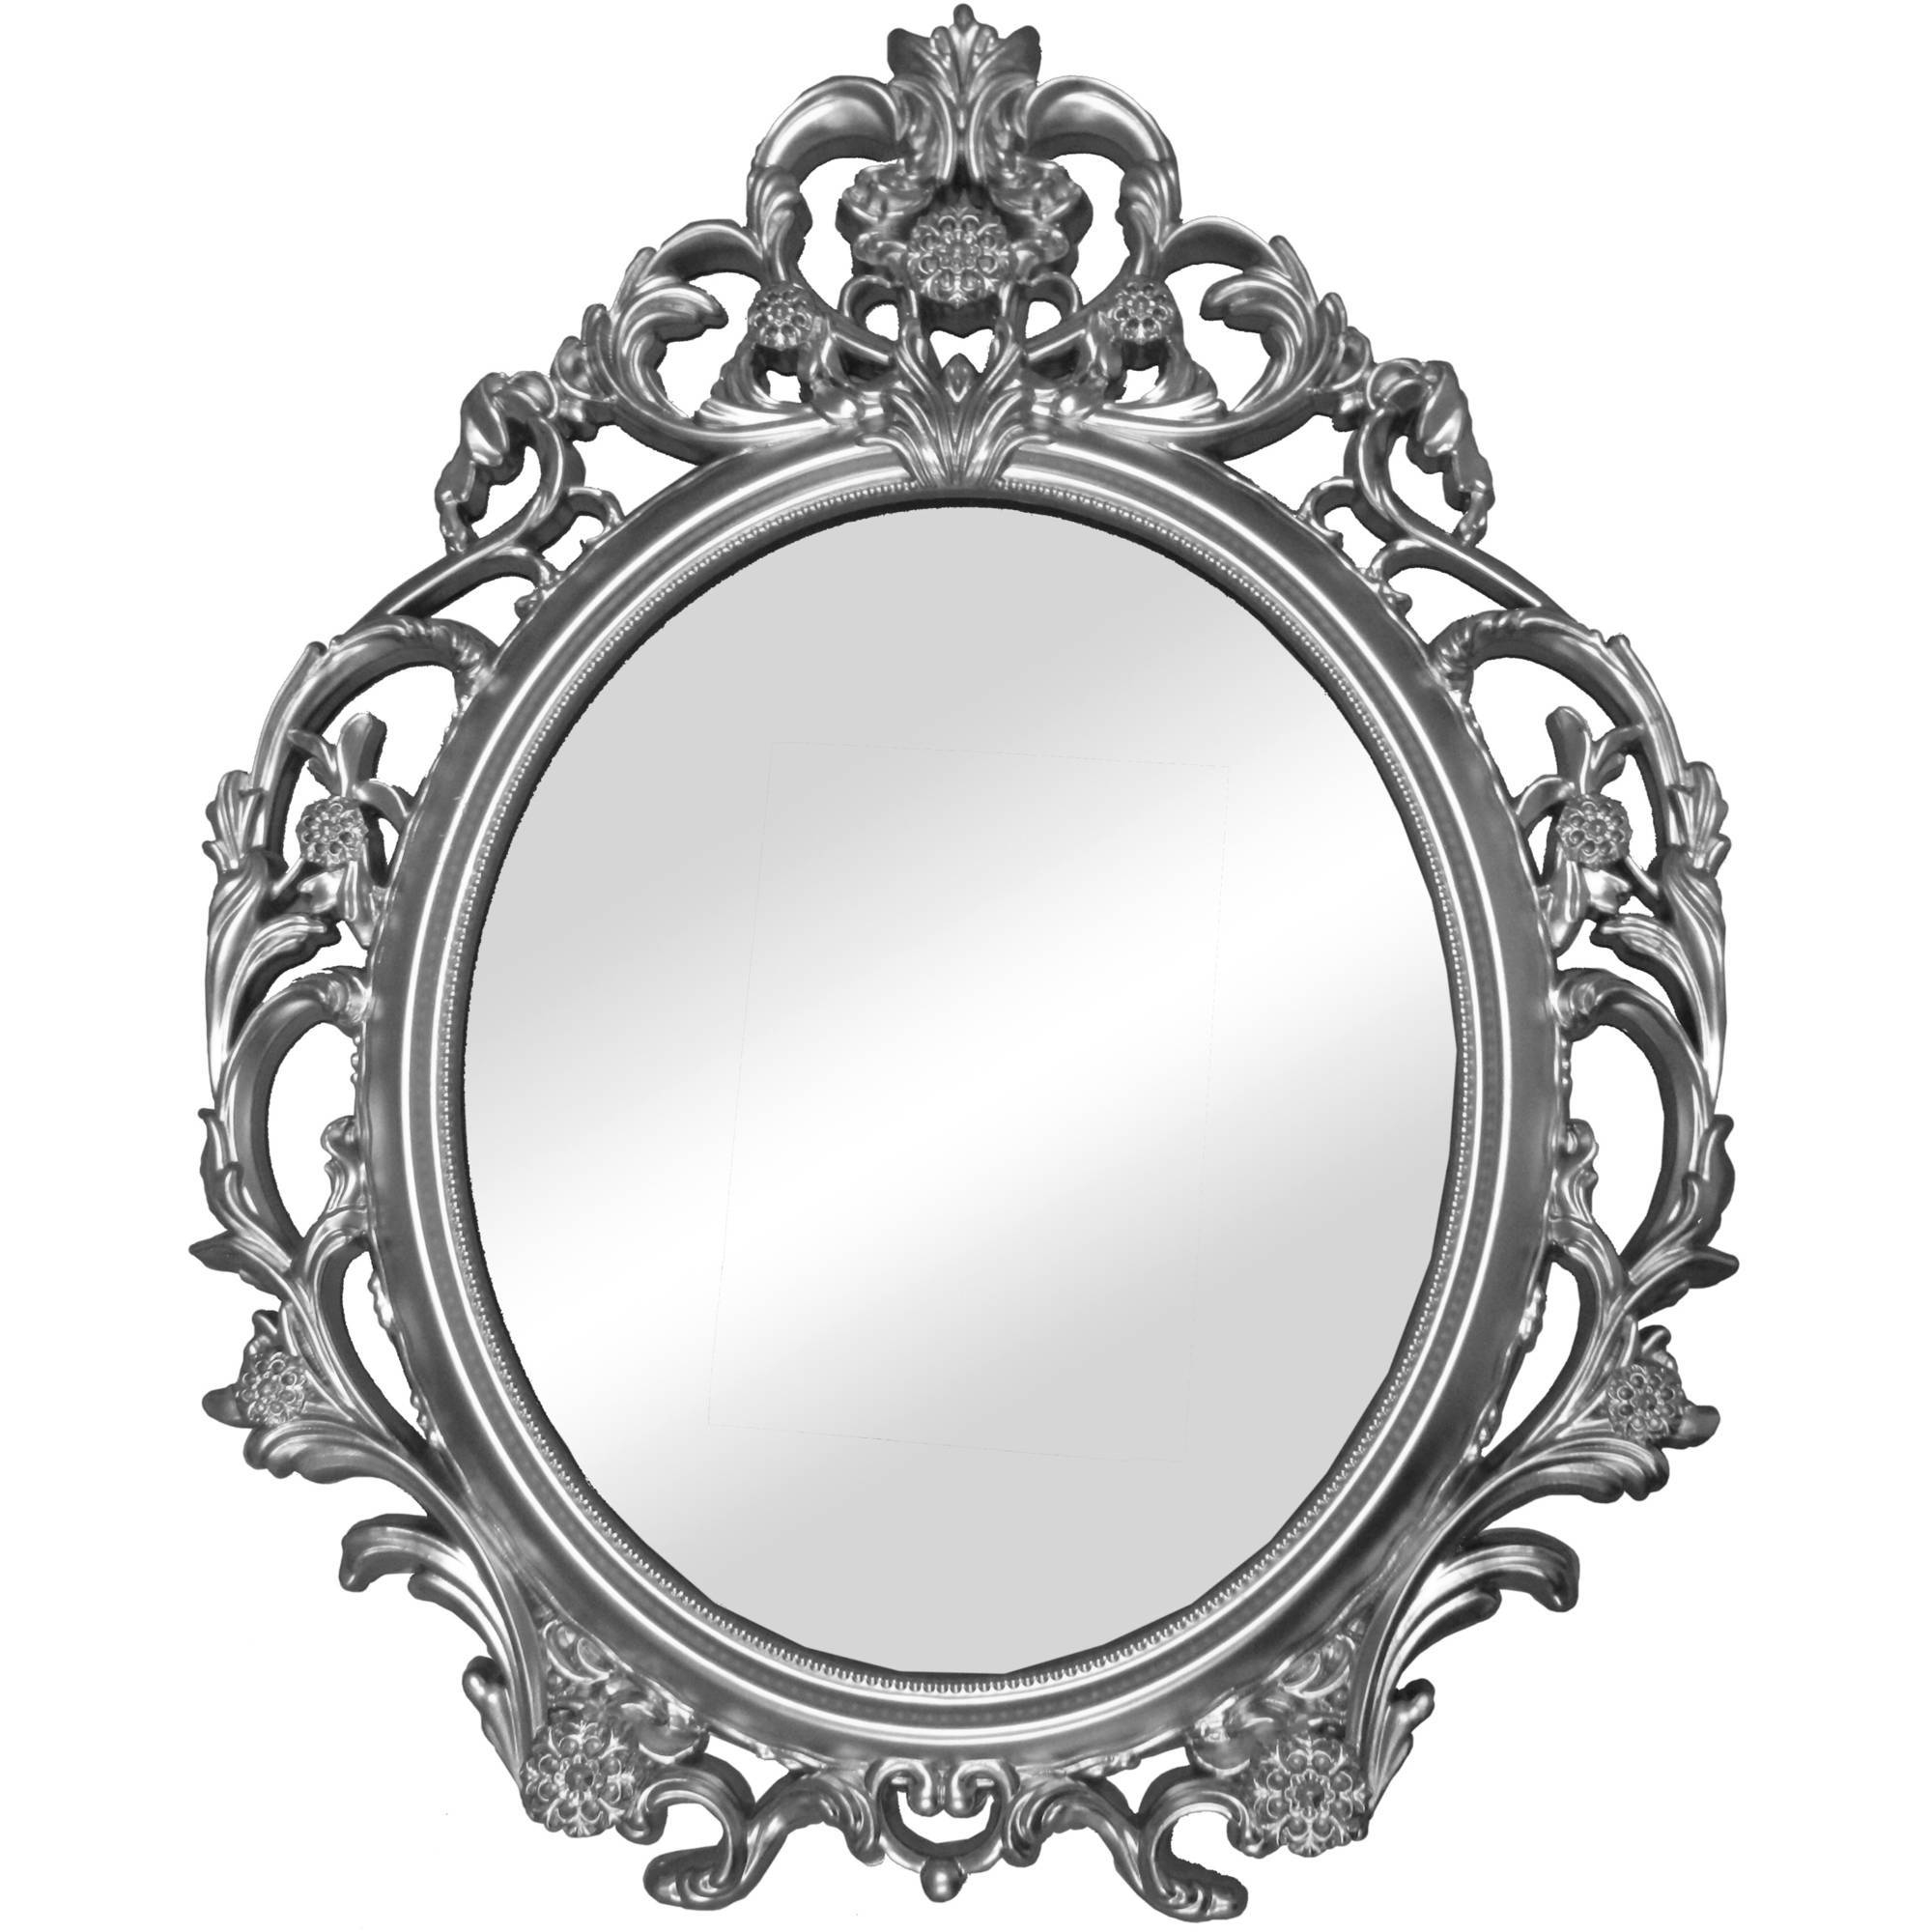 Better Homes And Gardens Baroque Wall Mirror – Walmart Intended For Baroque White Mirrors (View 11 of 25)